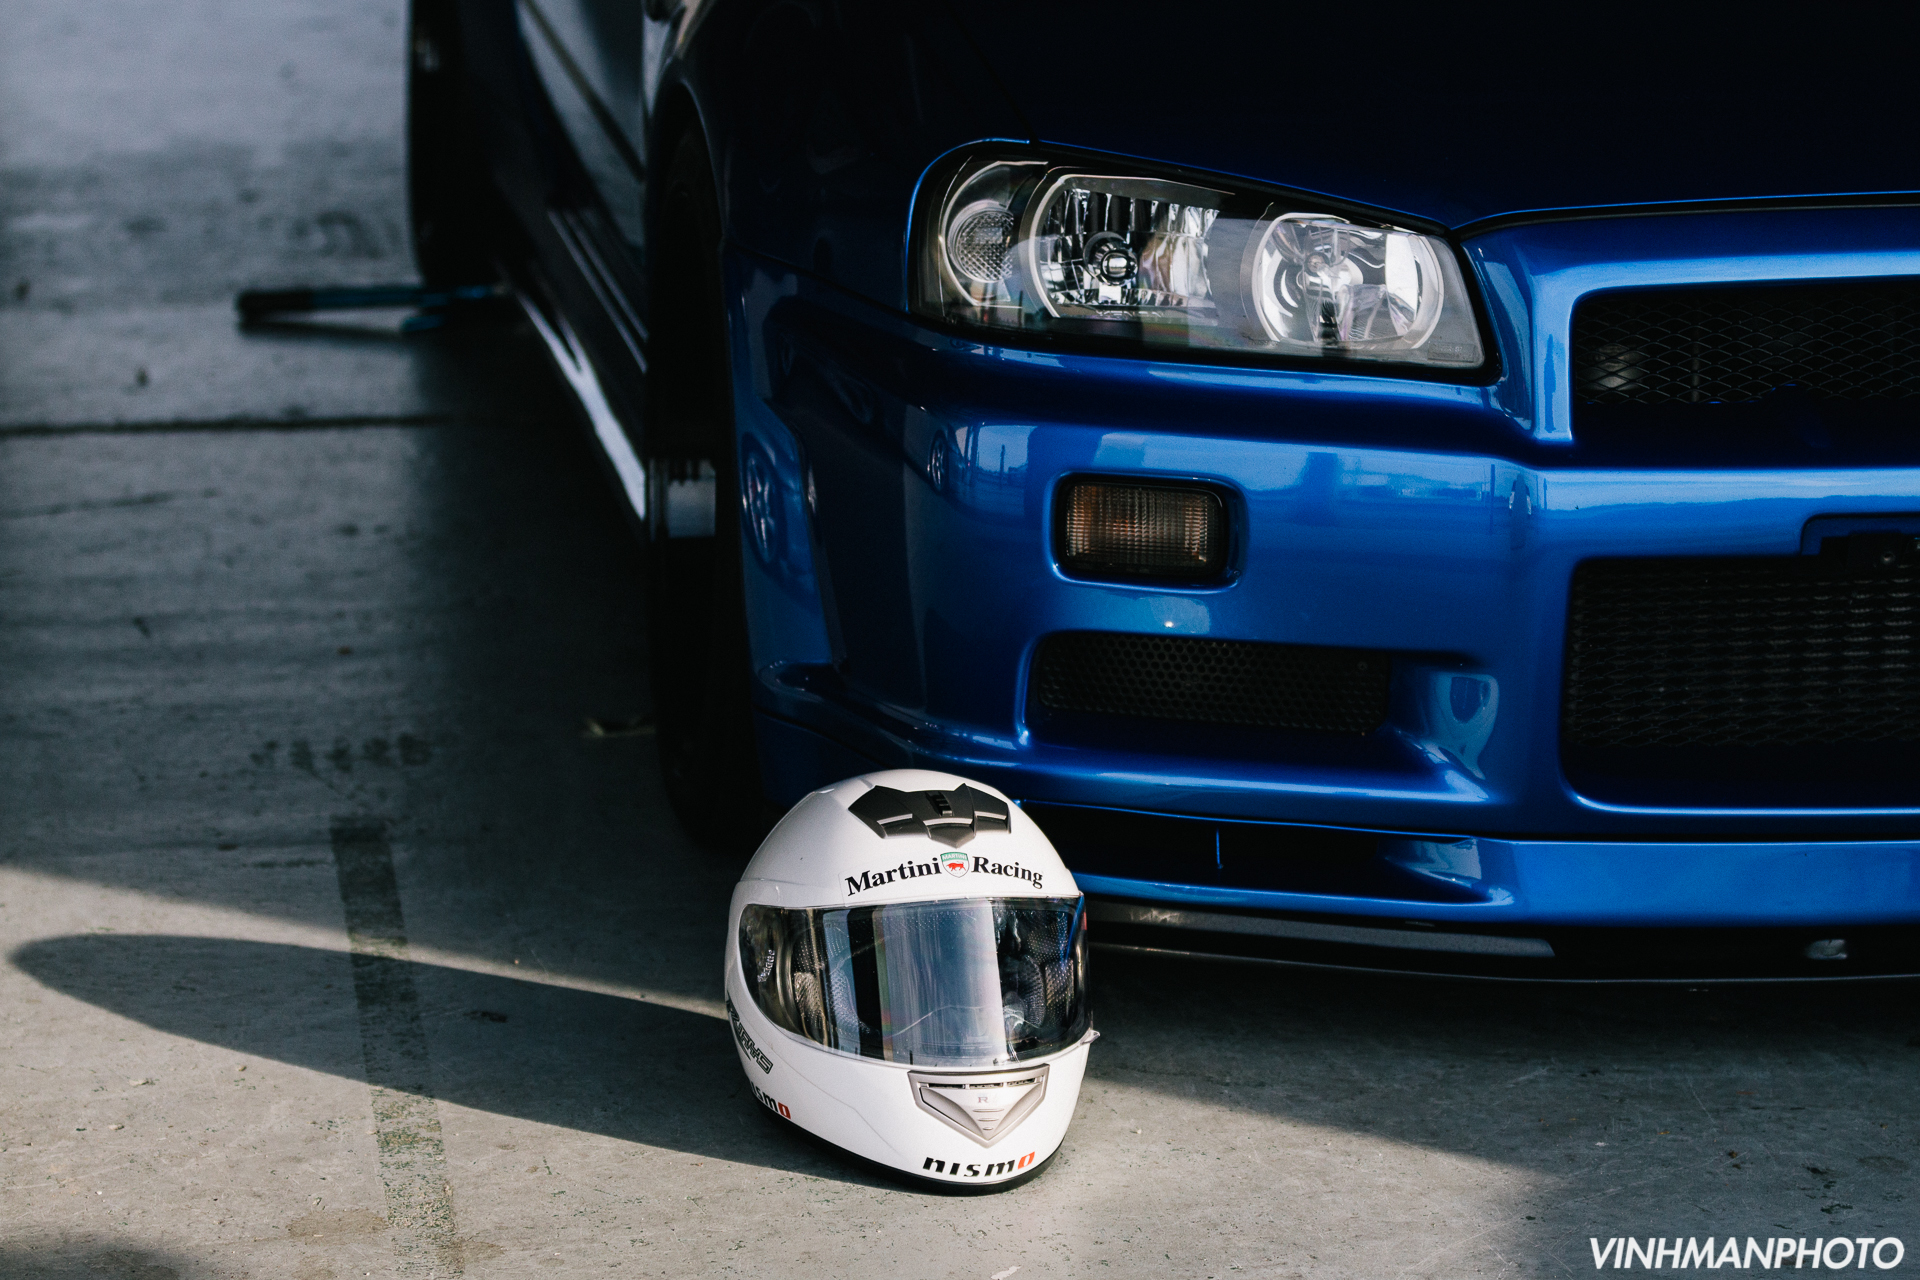 Nissan Skyline GTR R34 at the track